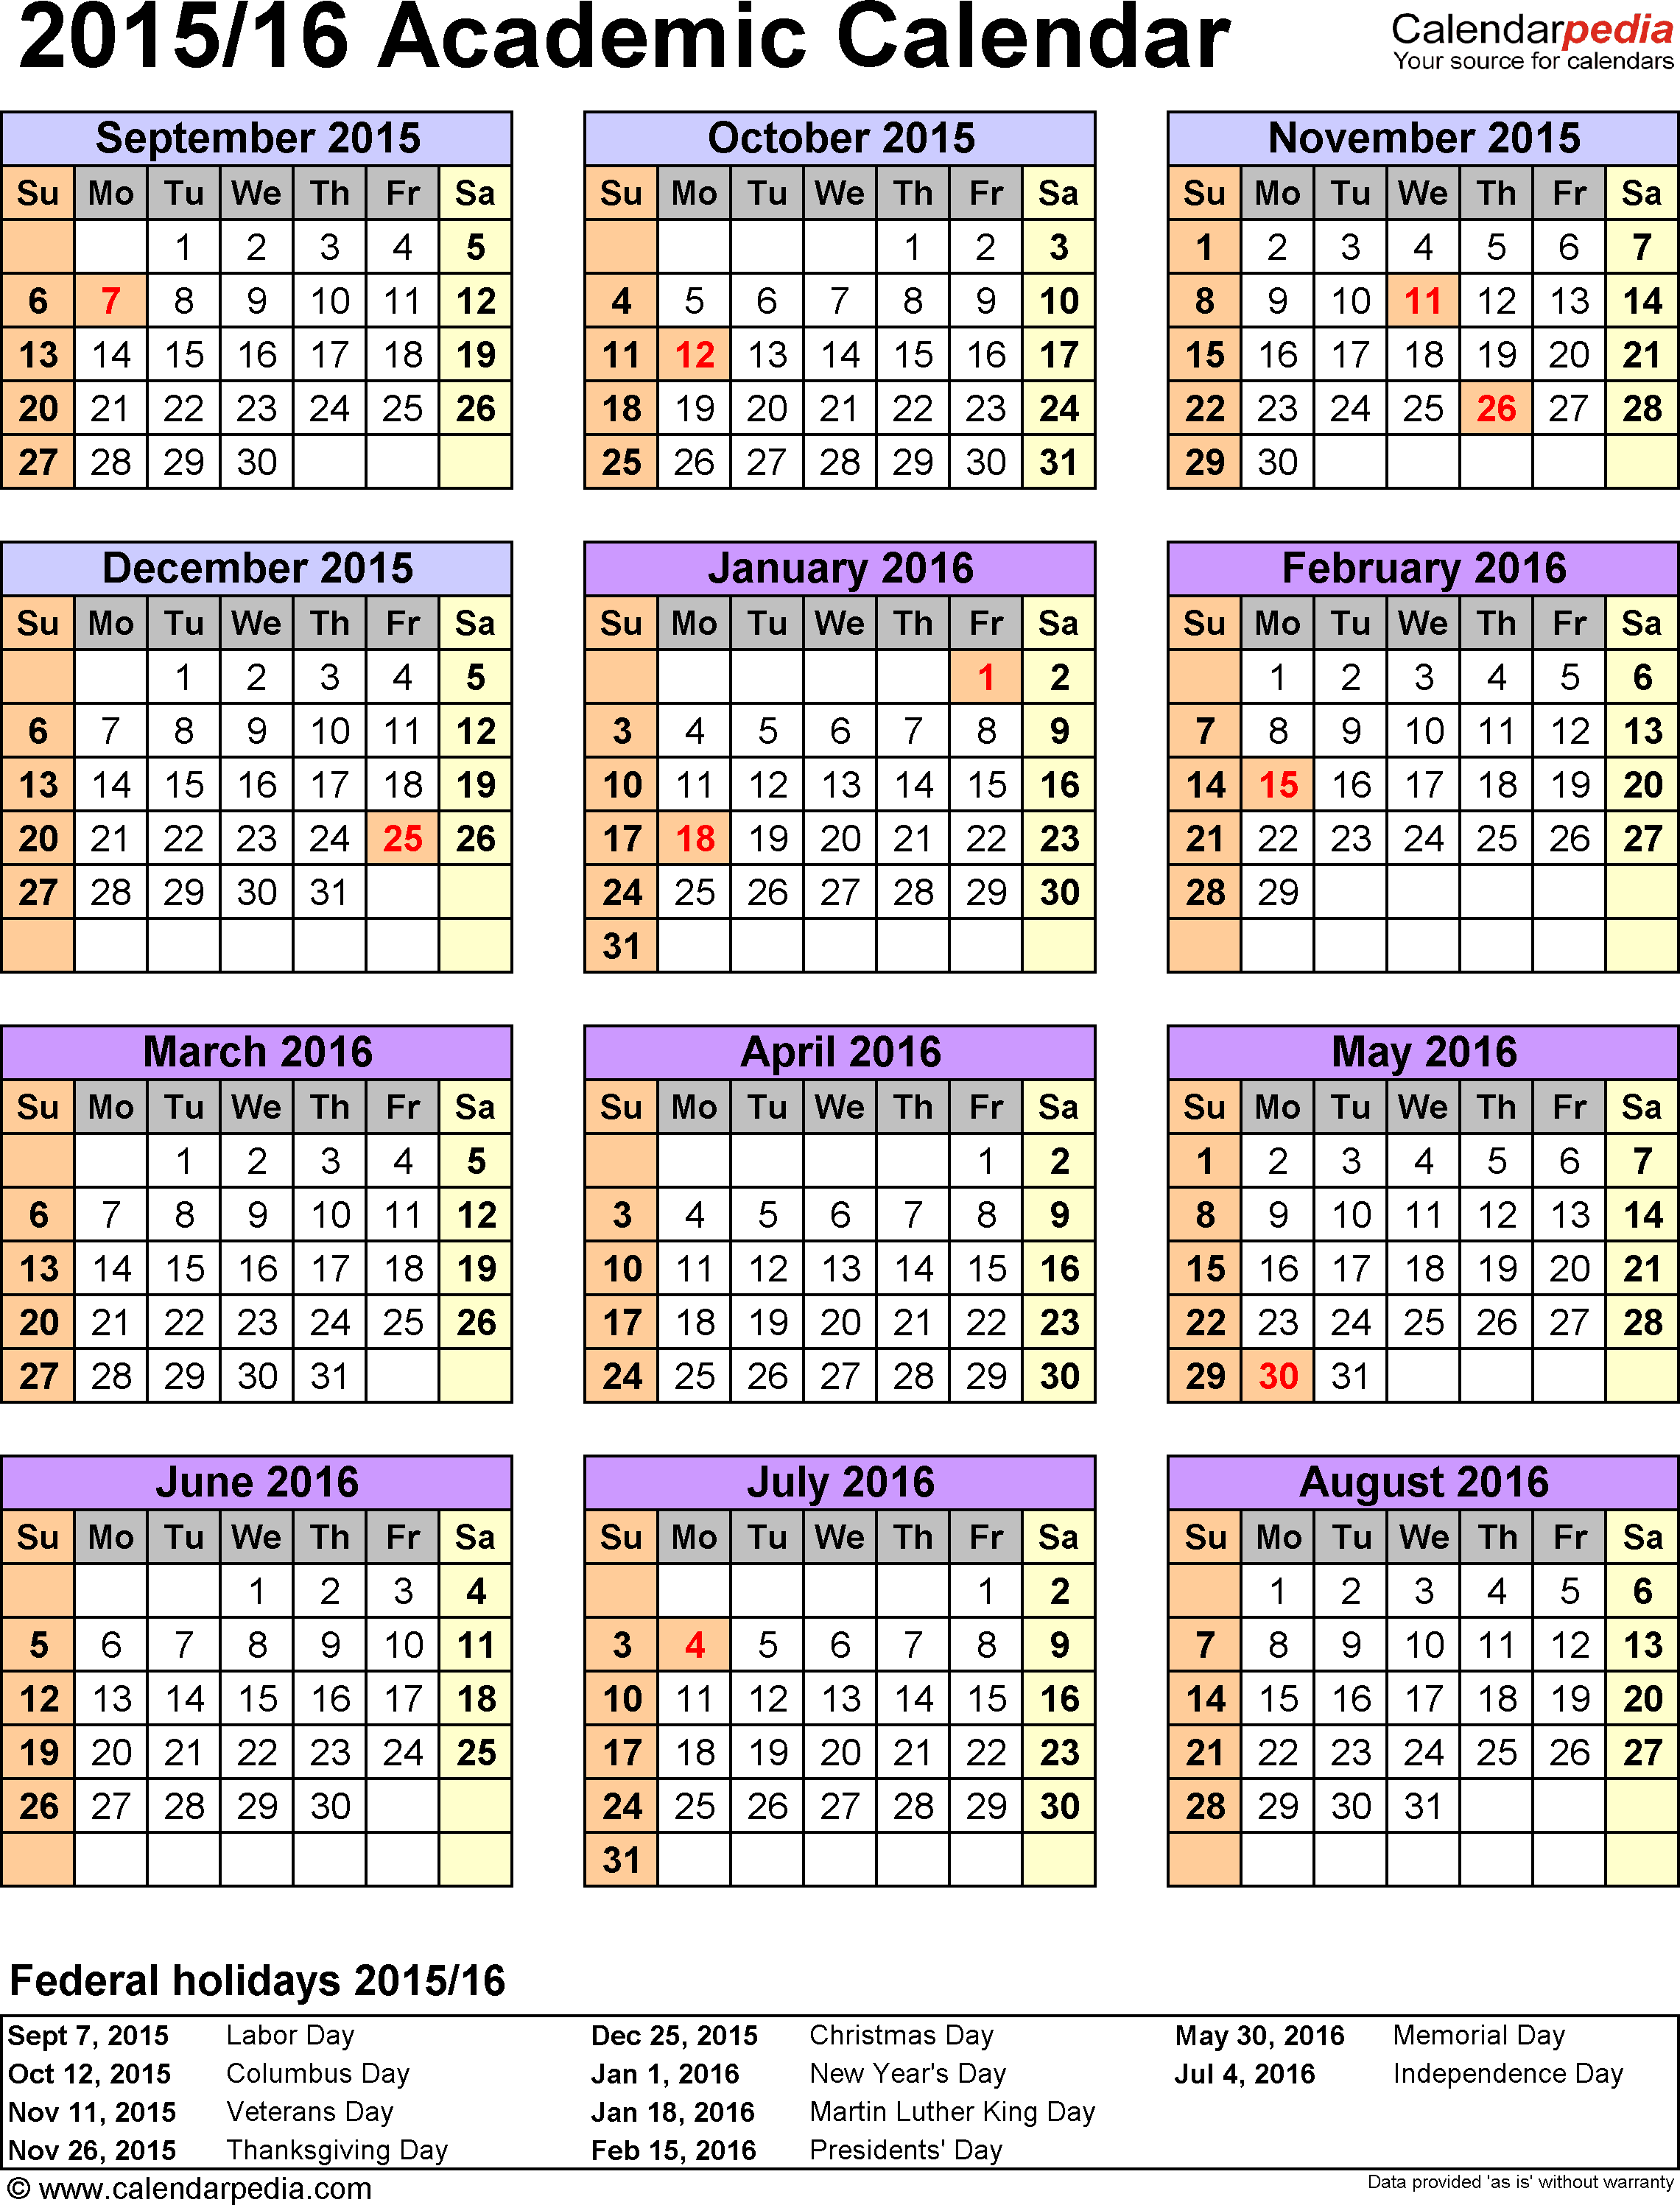 Template 7: Academic calendar 2015/16 for PDF, portrait, 1 page, year at a glance